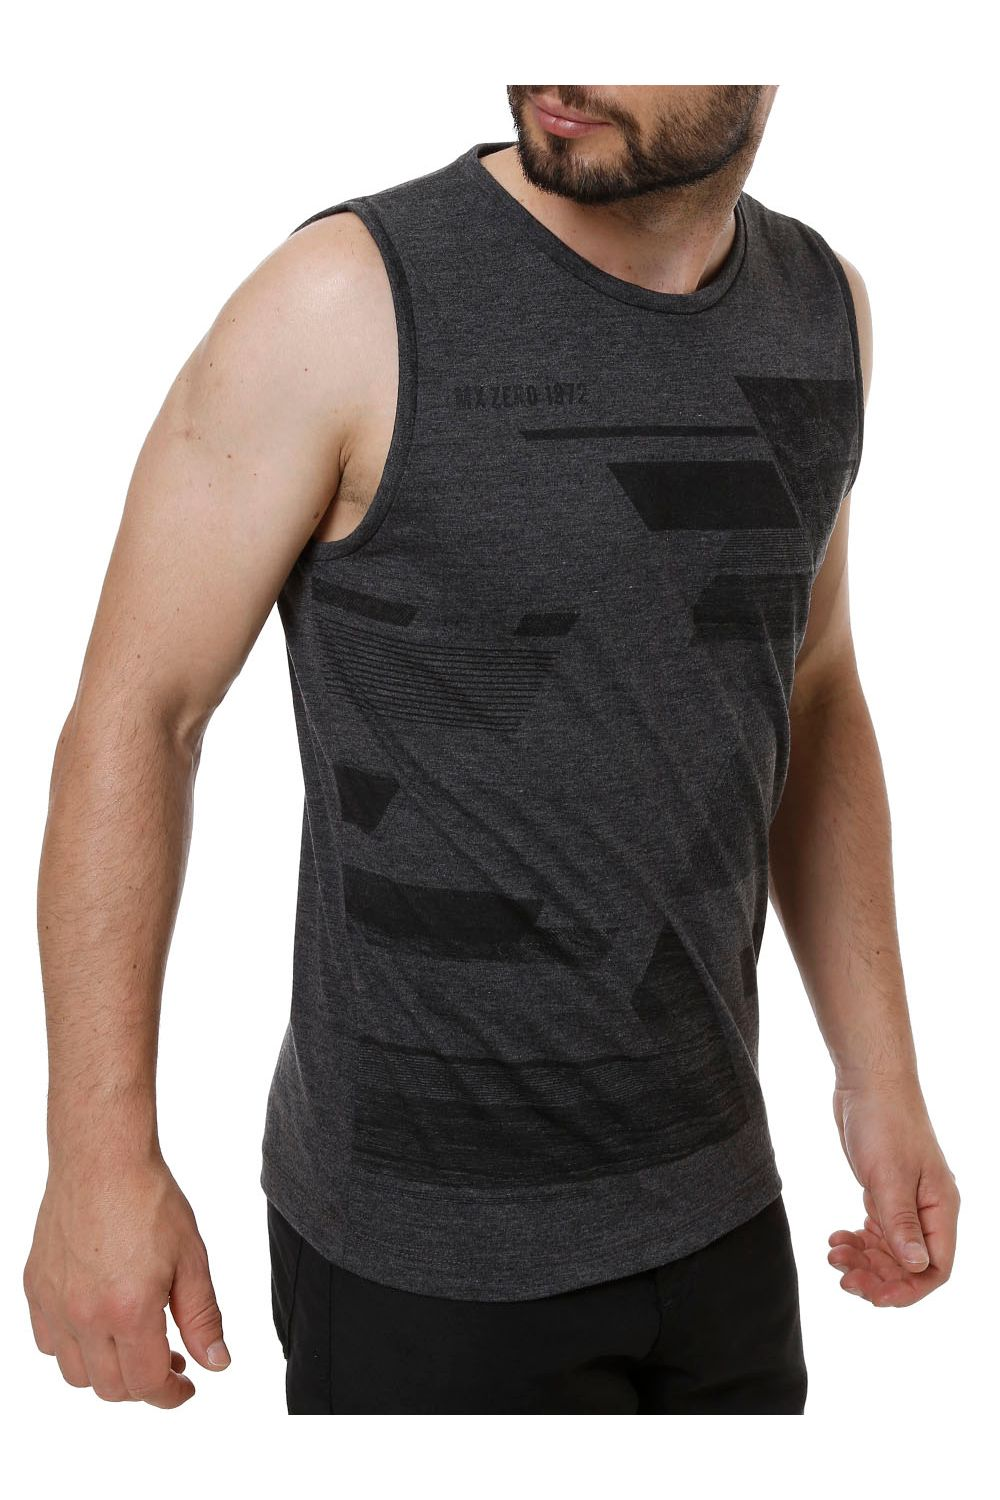 Camiseta Regata Masculina Cinza - Moda it 4448b92d53d